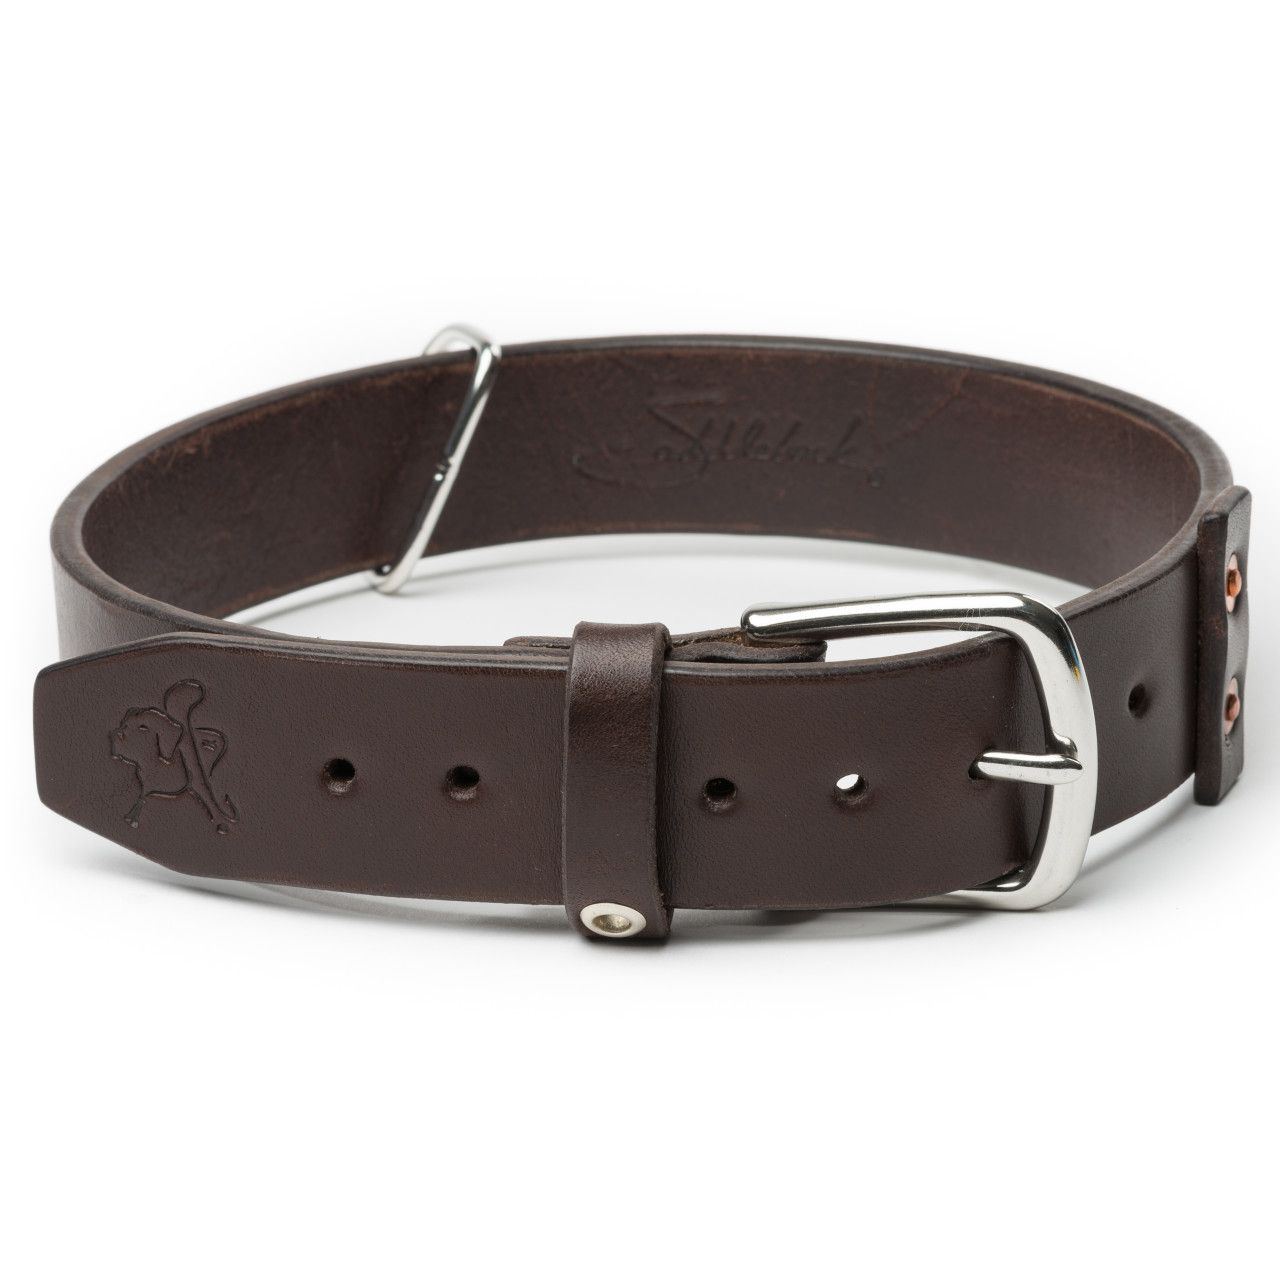 leather dog collar large in dark coffee brown leather